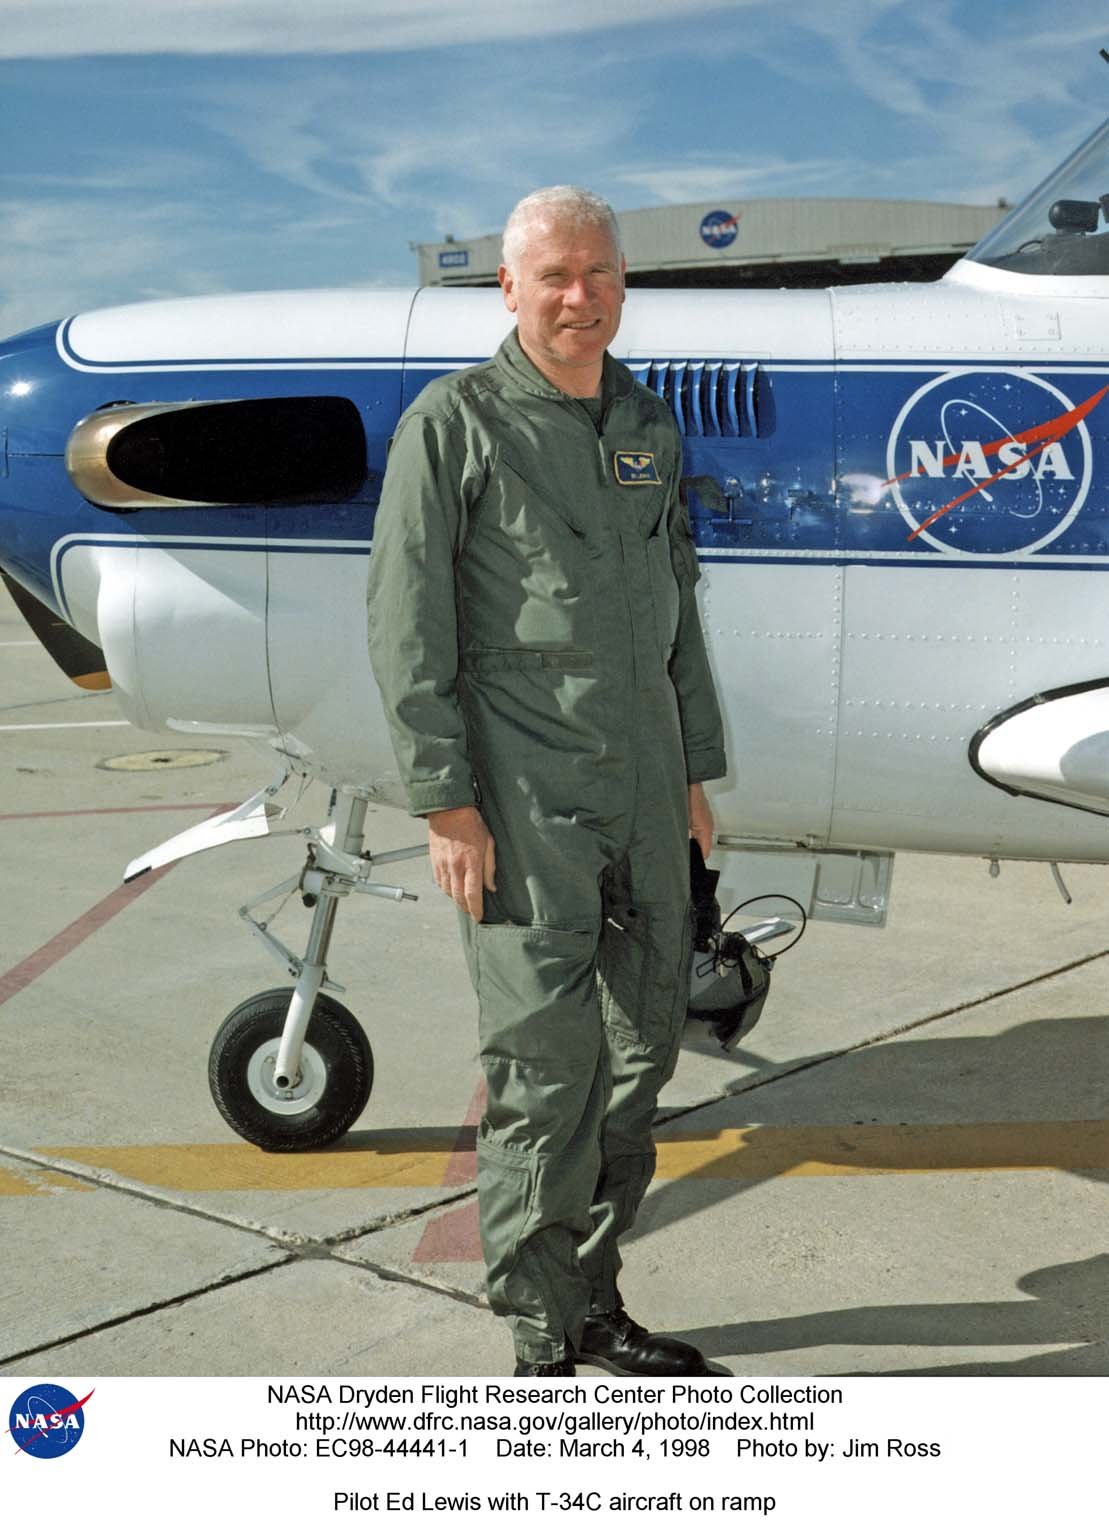 NASA pilot Ed Lewis with the T-34C aircraft on the Dryden Flight Research Center Ramp. The aircraft was previously used at the Lewis Research Center in propulsion experiments involving turboprop engines, and was used as a chase aircraft at Dryden for smaller and slower research projects. Chase aircraft accompany research flights for photography and video purposes, and also as support for safety and research. At Dryden, the T-34 is used mainly for smaller remotely piloted vehicles which fly slower than NASA's F-18's, used for larger scale projects. This aircraft was returned to the U.S. Navy in May of 2002.